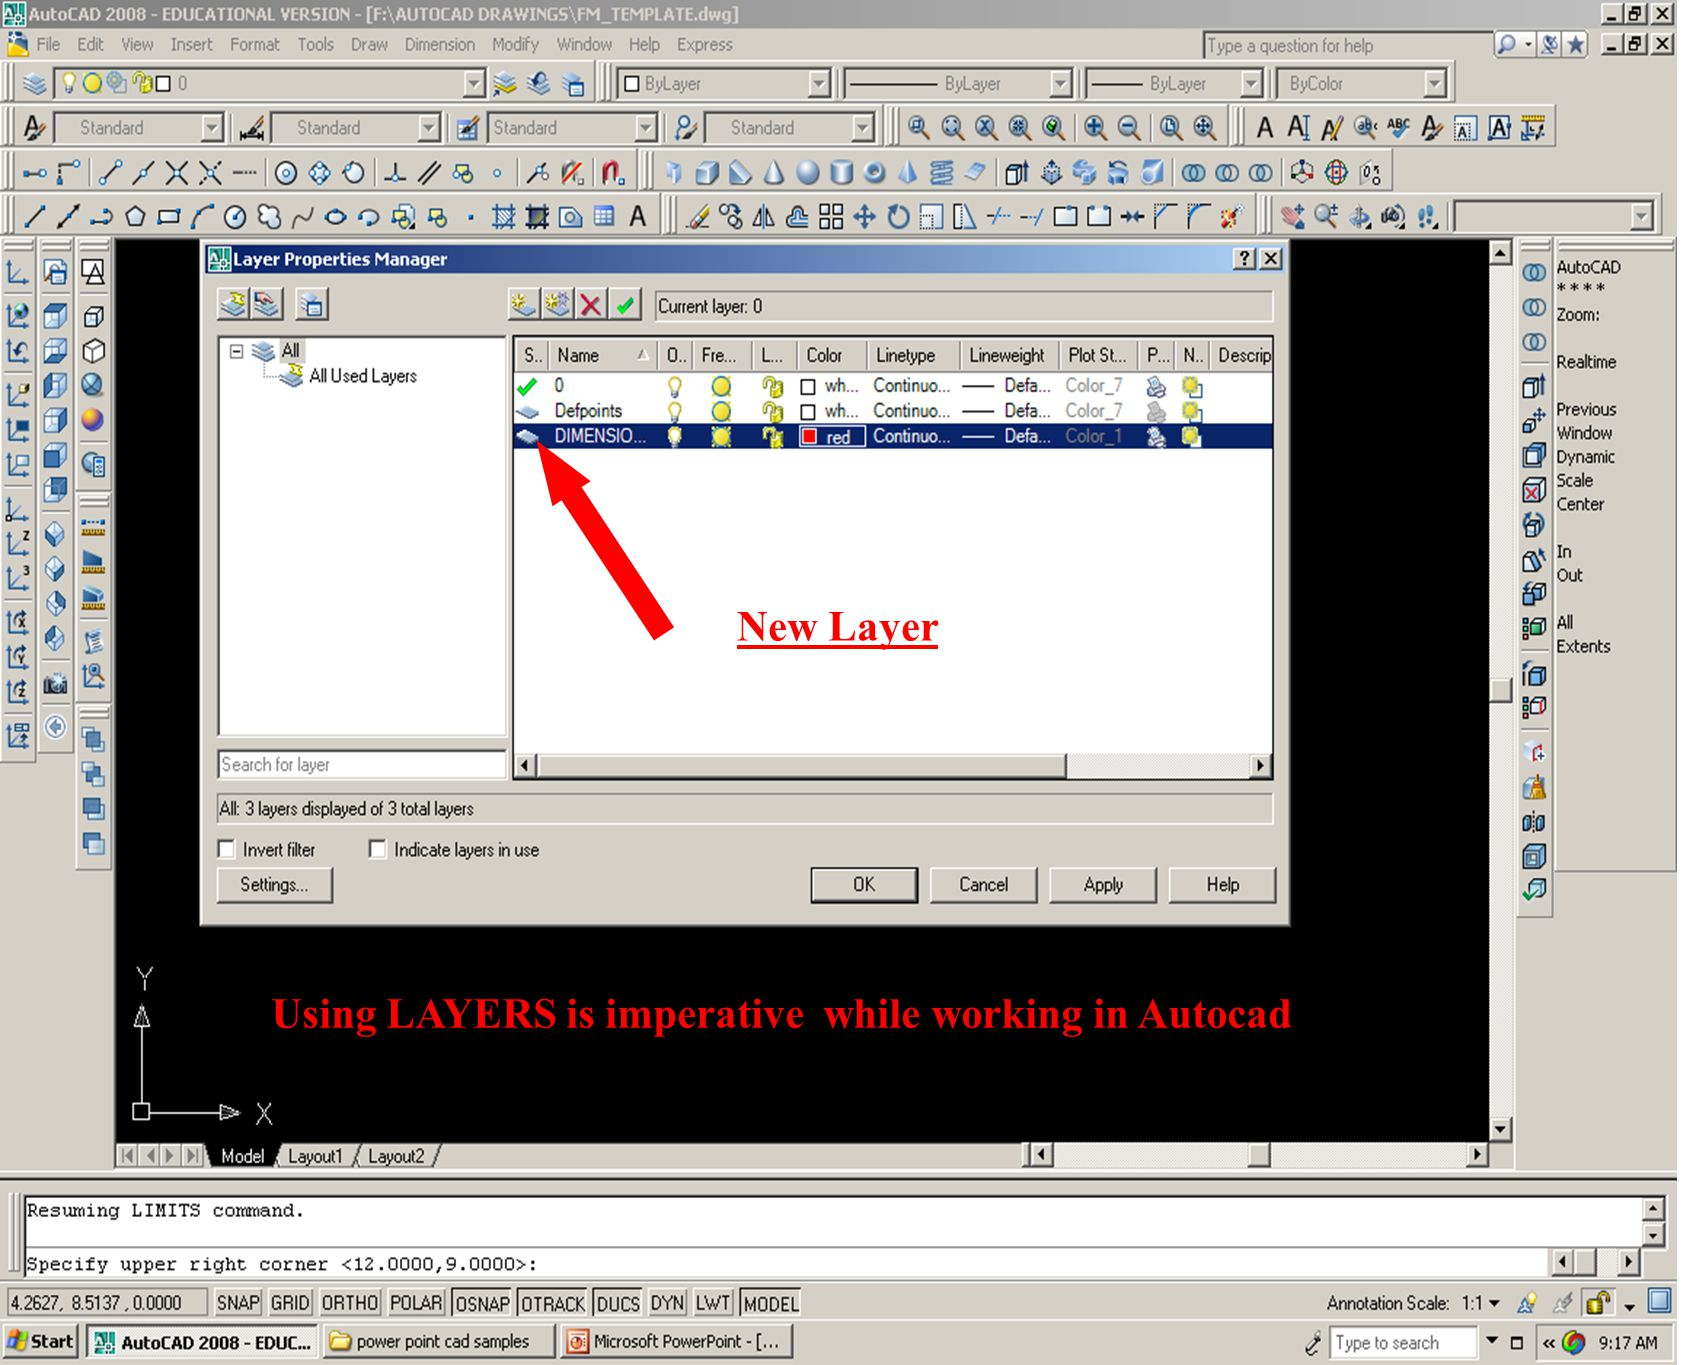 Using LAYERS is imperative while working in Autocad